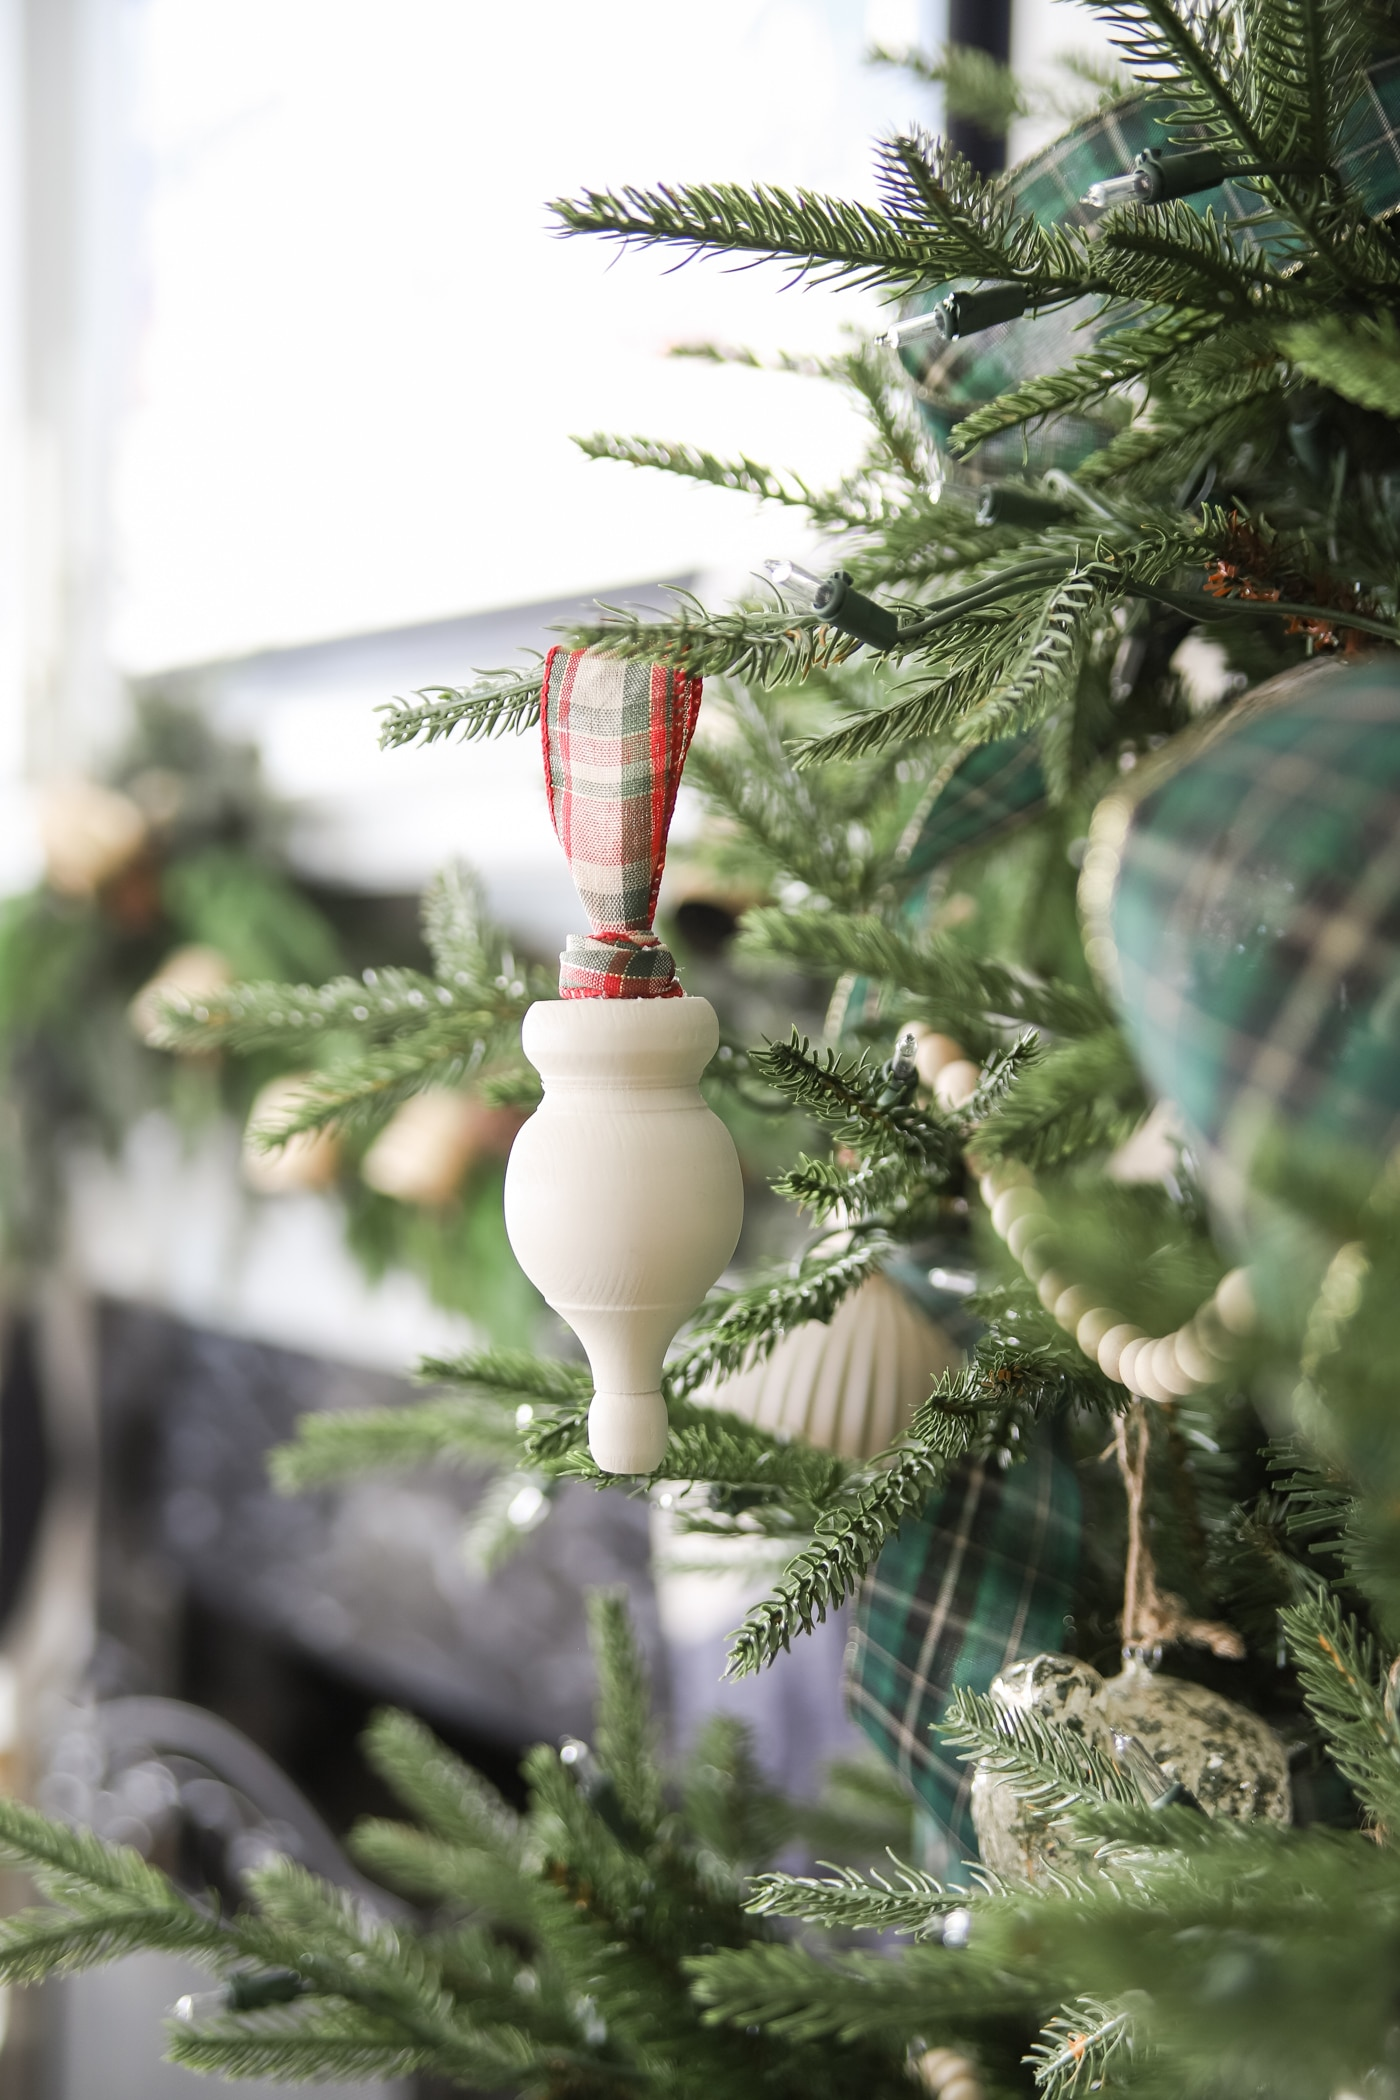 DIY Wooden Finial Christmas Ornament